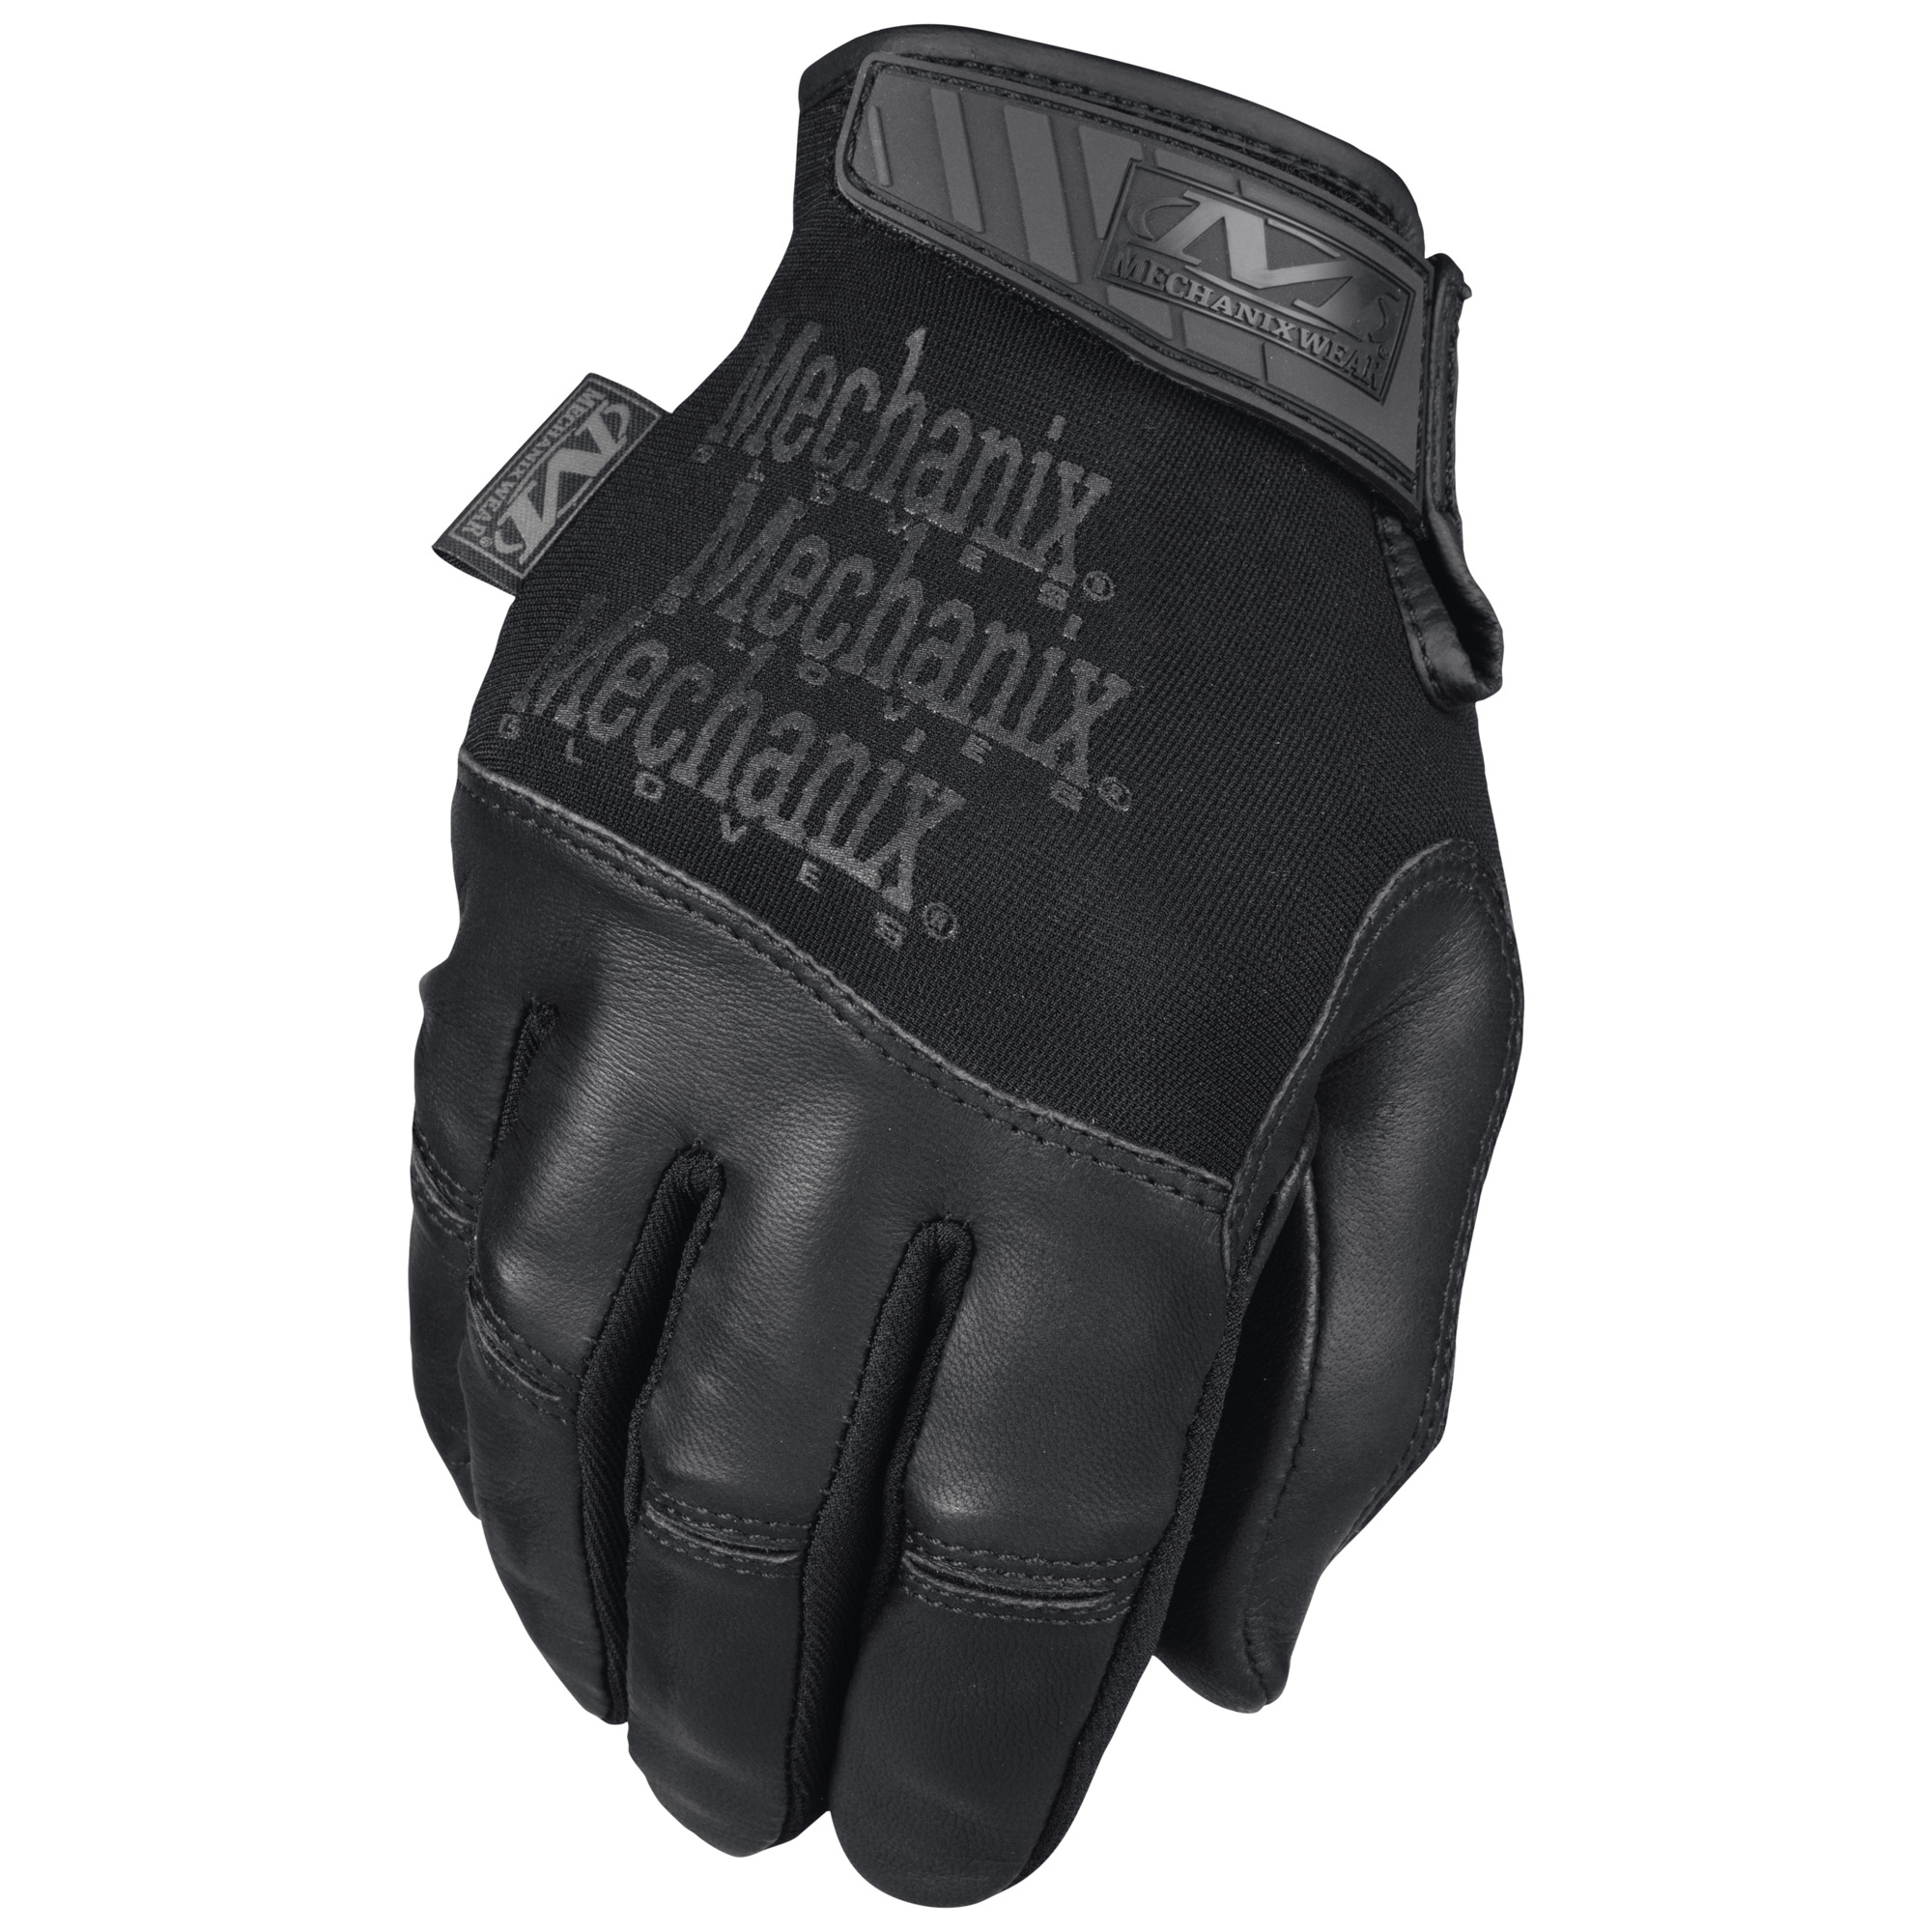 The Recon is a performance leather tactical glove designed to support law enforcement officers with versatile hand protection in the field. The glove is anatomically designed to the natural curvatures of your hand using three-dimensional patterning to create a snug fit. The glove features touchscreen capable goatskin leather to deliver the perfect blend of dexterity and durability in the field.